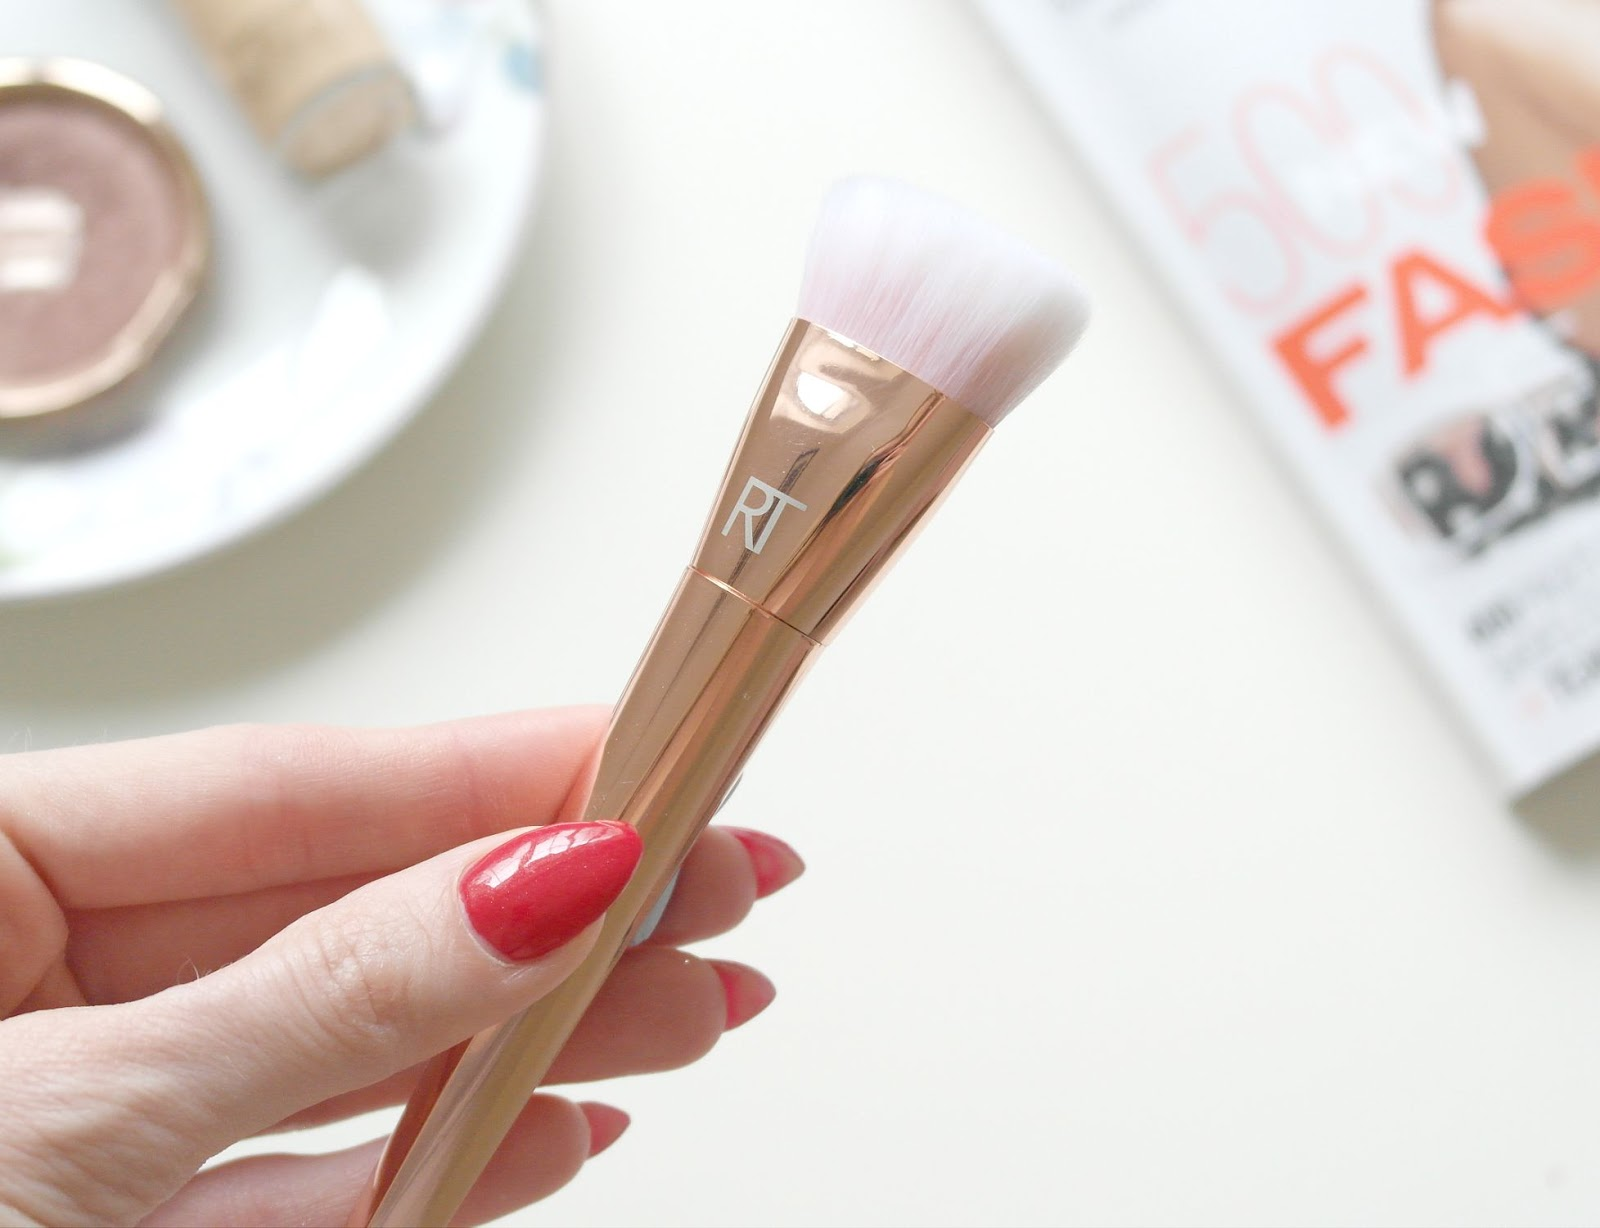 real techniques bold metals contour brush. real techniques bold metals 301 flat contour brush review, beauty blog